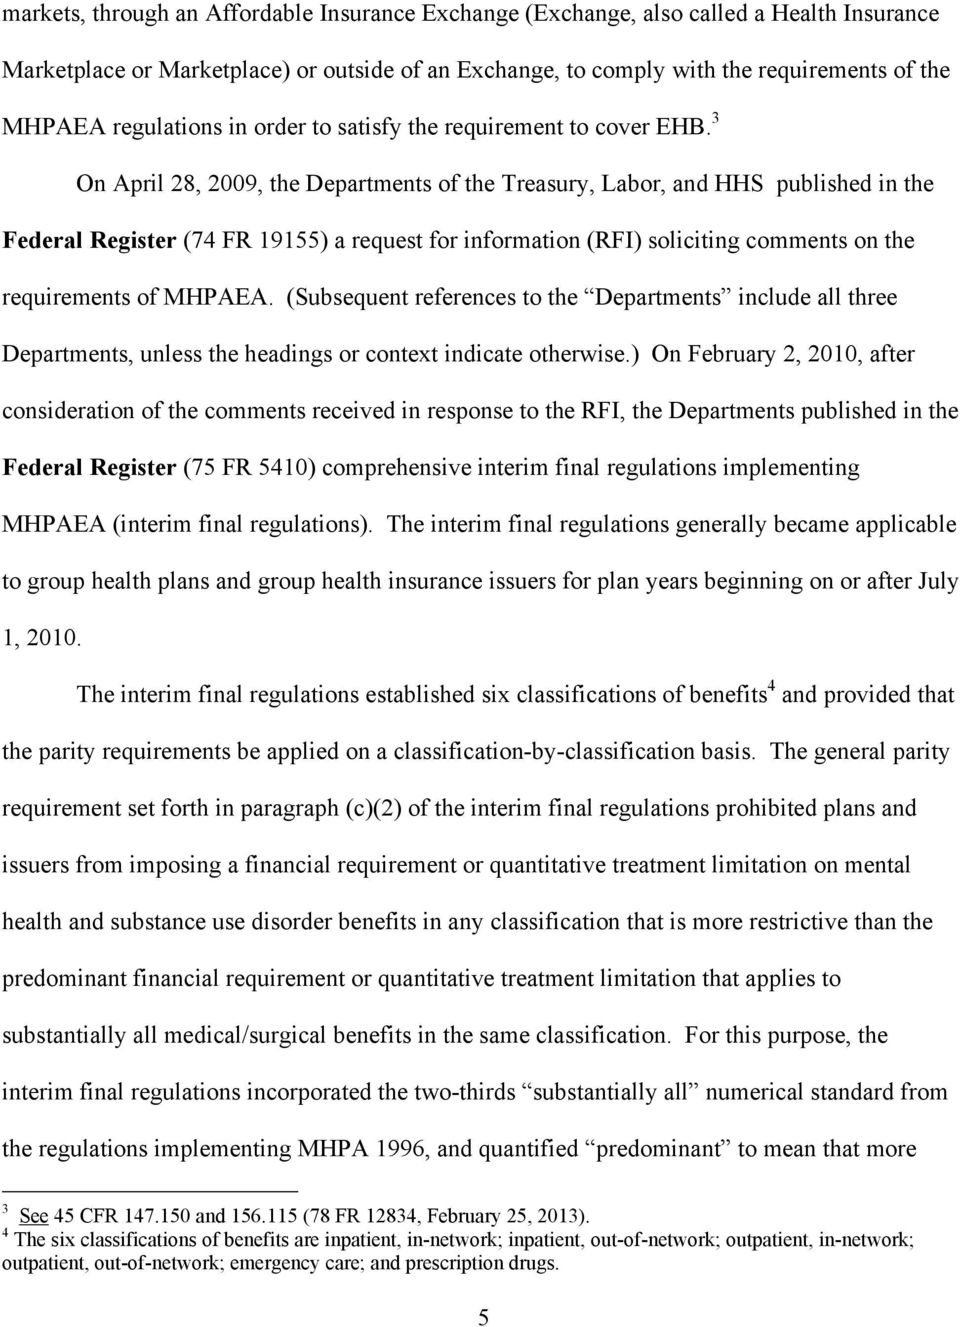 3 On April 28, 2009, the Departments of the Treasury, Labor, and HHS published in the Federal Register (74 FR 19155) a request for information (RFI) soliciting comments on the requirements of MHPAEA.